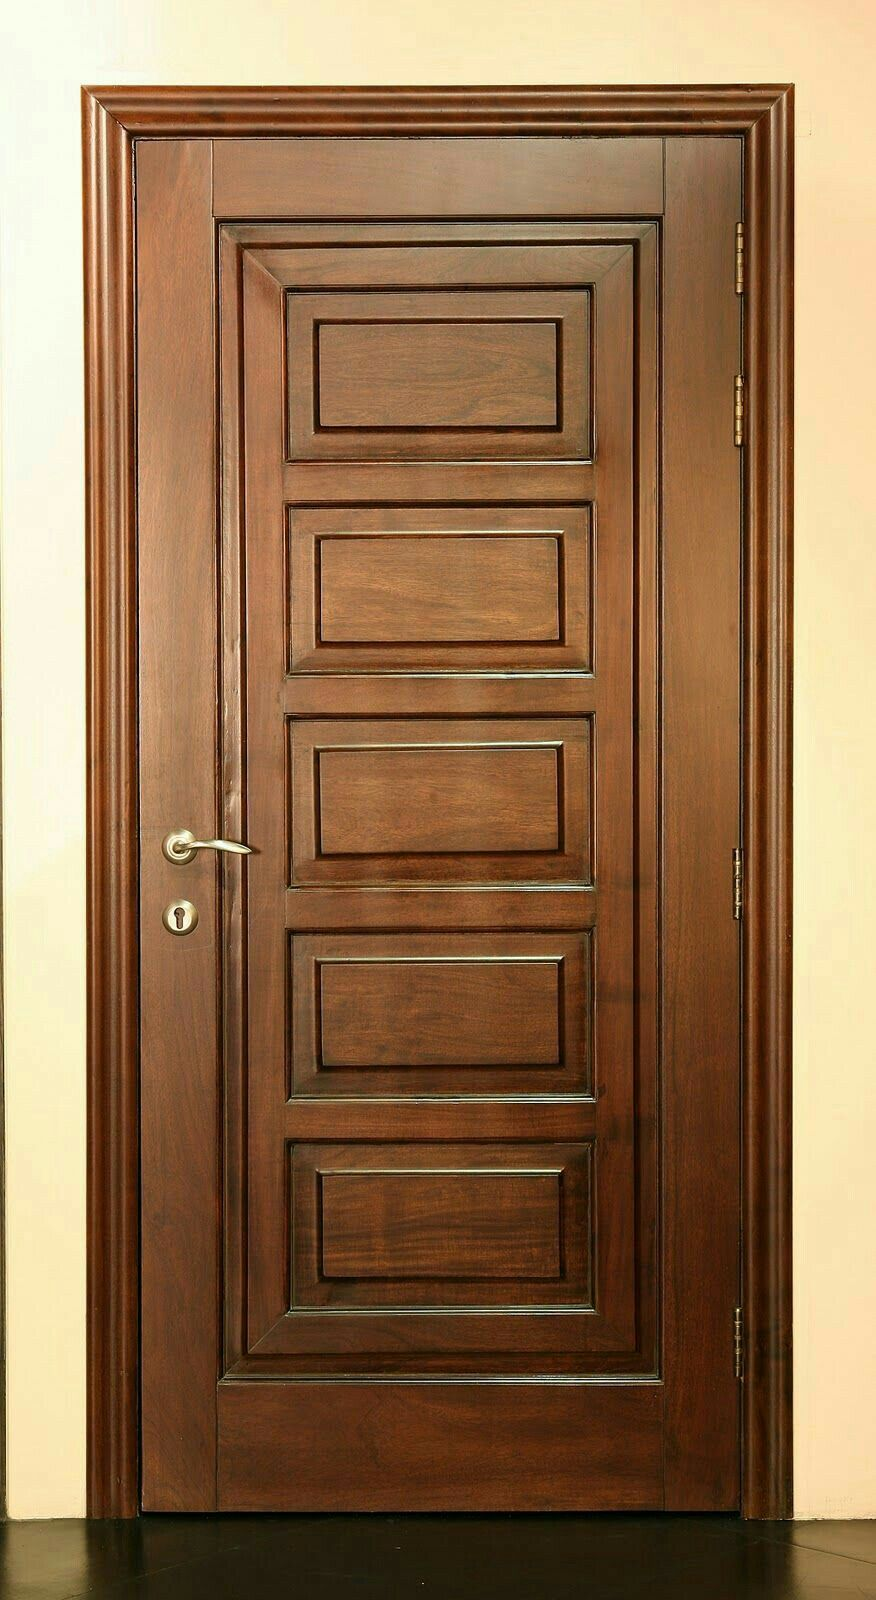 Pin By Imran Malik On New Door In 2019 Wooden Door Design